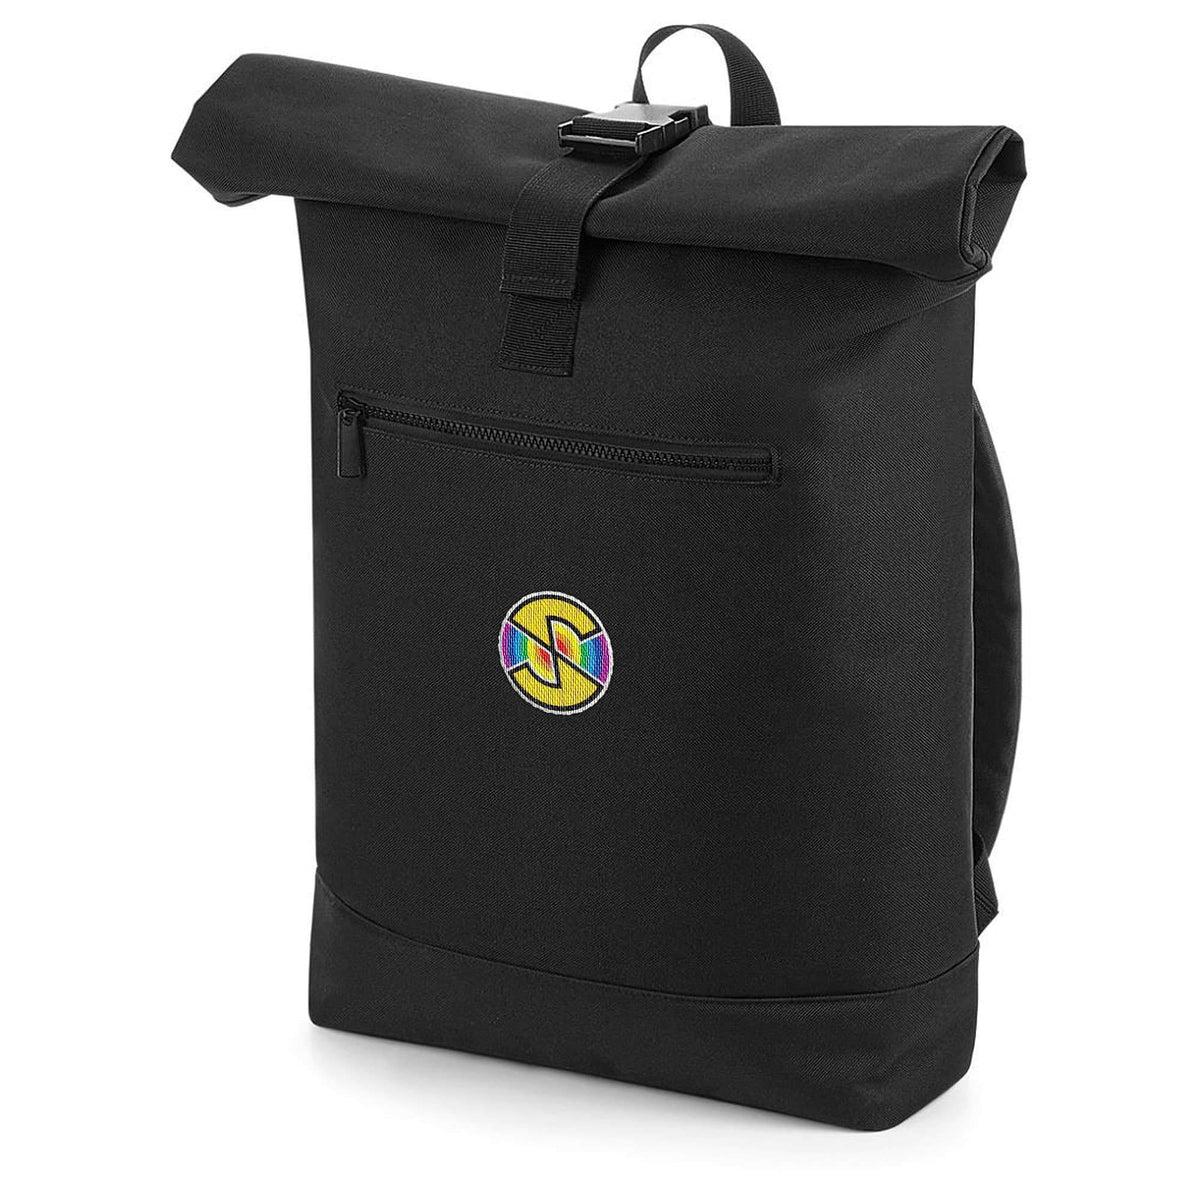 Captain Scarlet Spectrum Rolltop Backpack [Official & Exclusive] - The Gerry Anderson Store